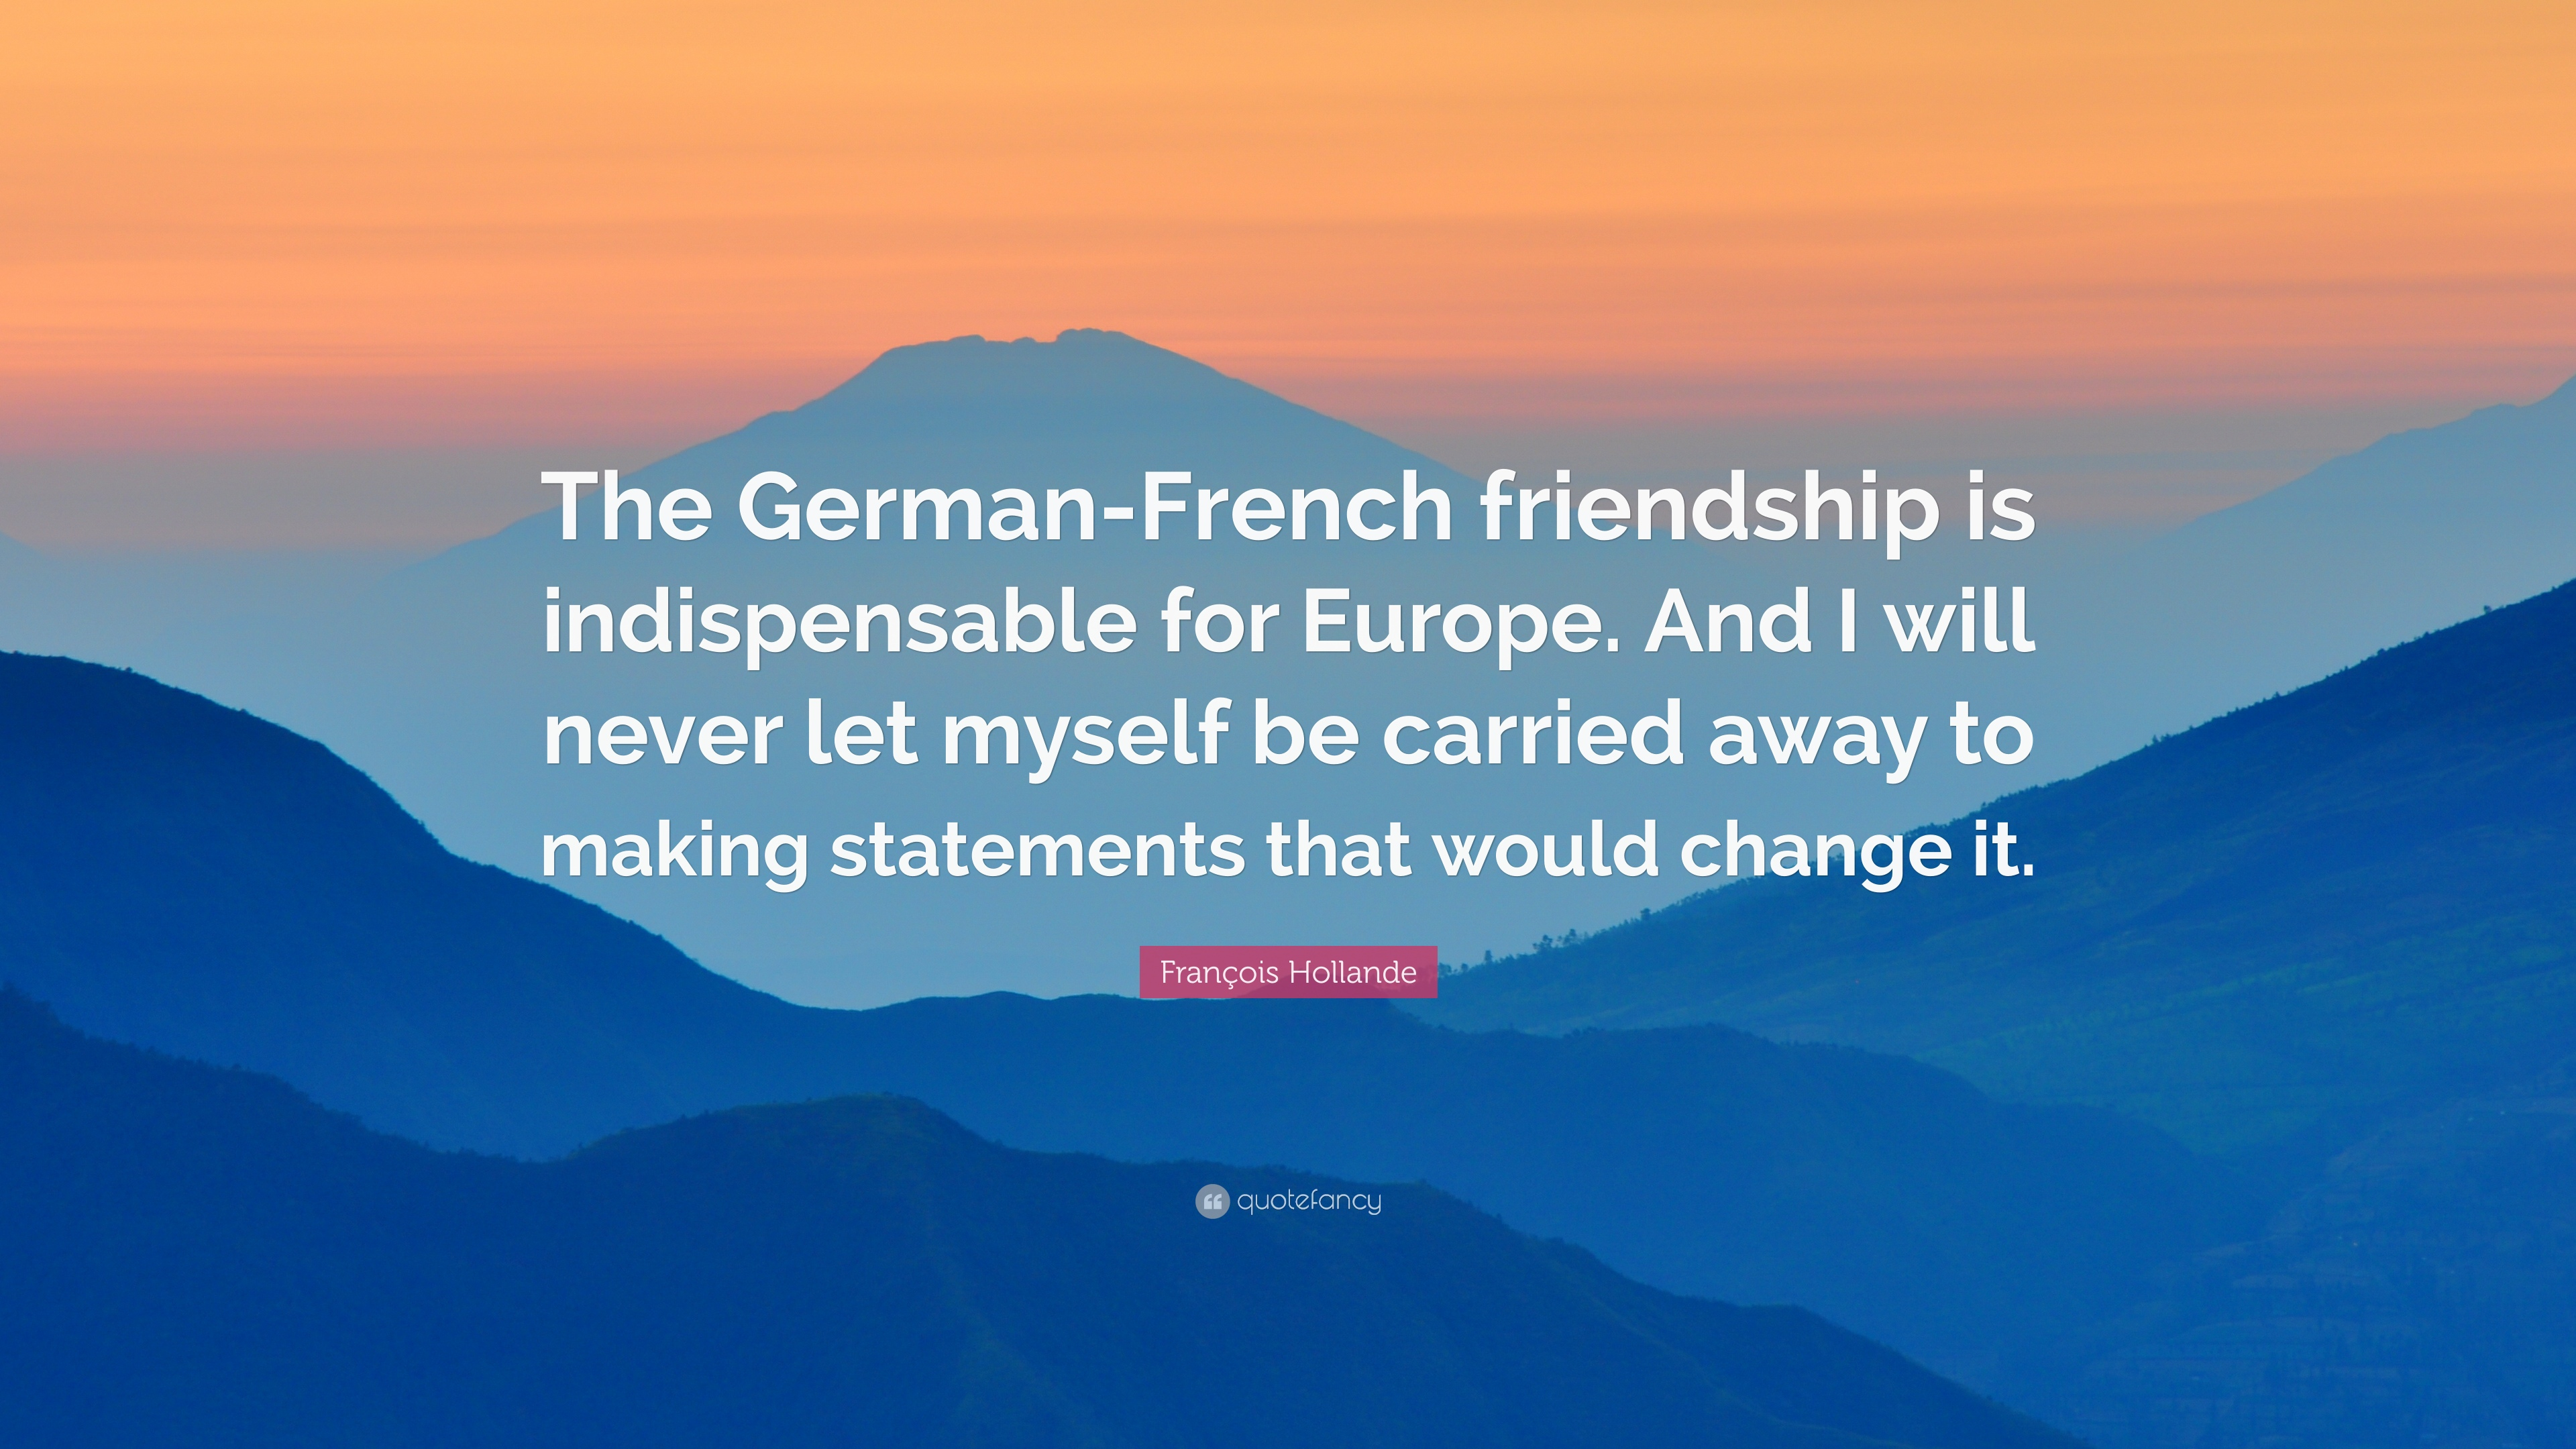 French Quotes About Friendship François Hollande Quotes 63 Wallpapers  Quotefancy